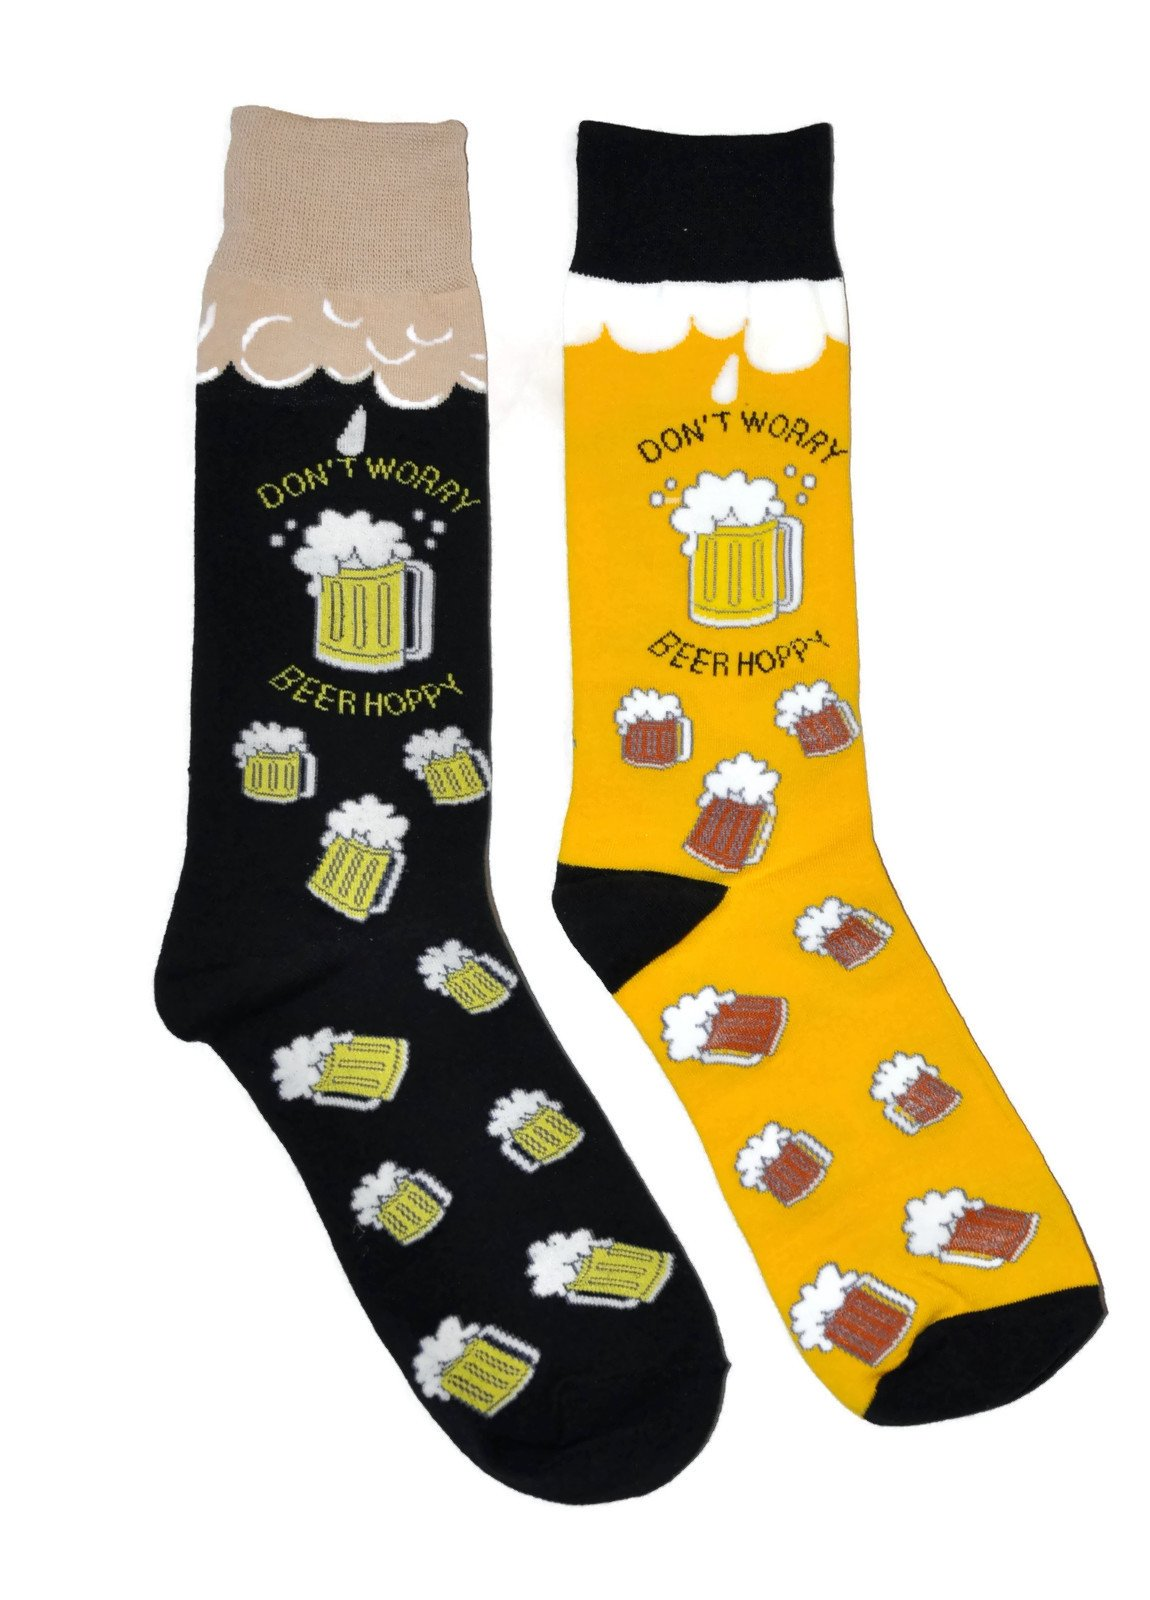 Mens Novelty Trouser Socks 2 Pair Bundle FineFit Themed Pattern (Beer Hoppy)